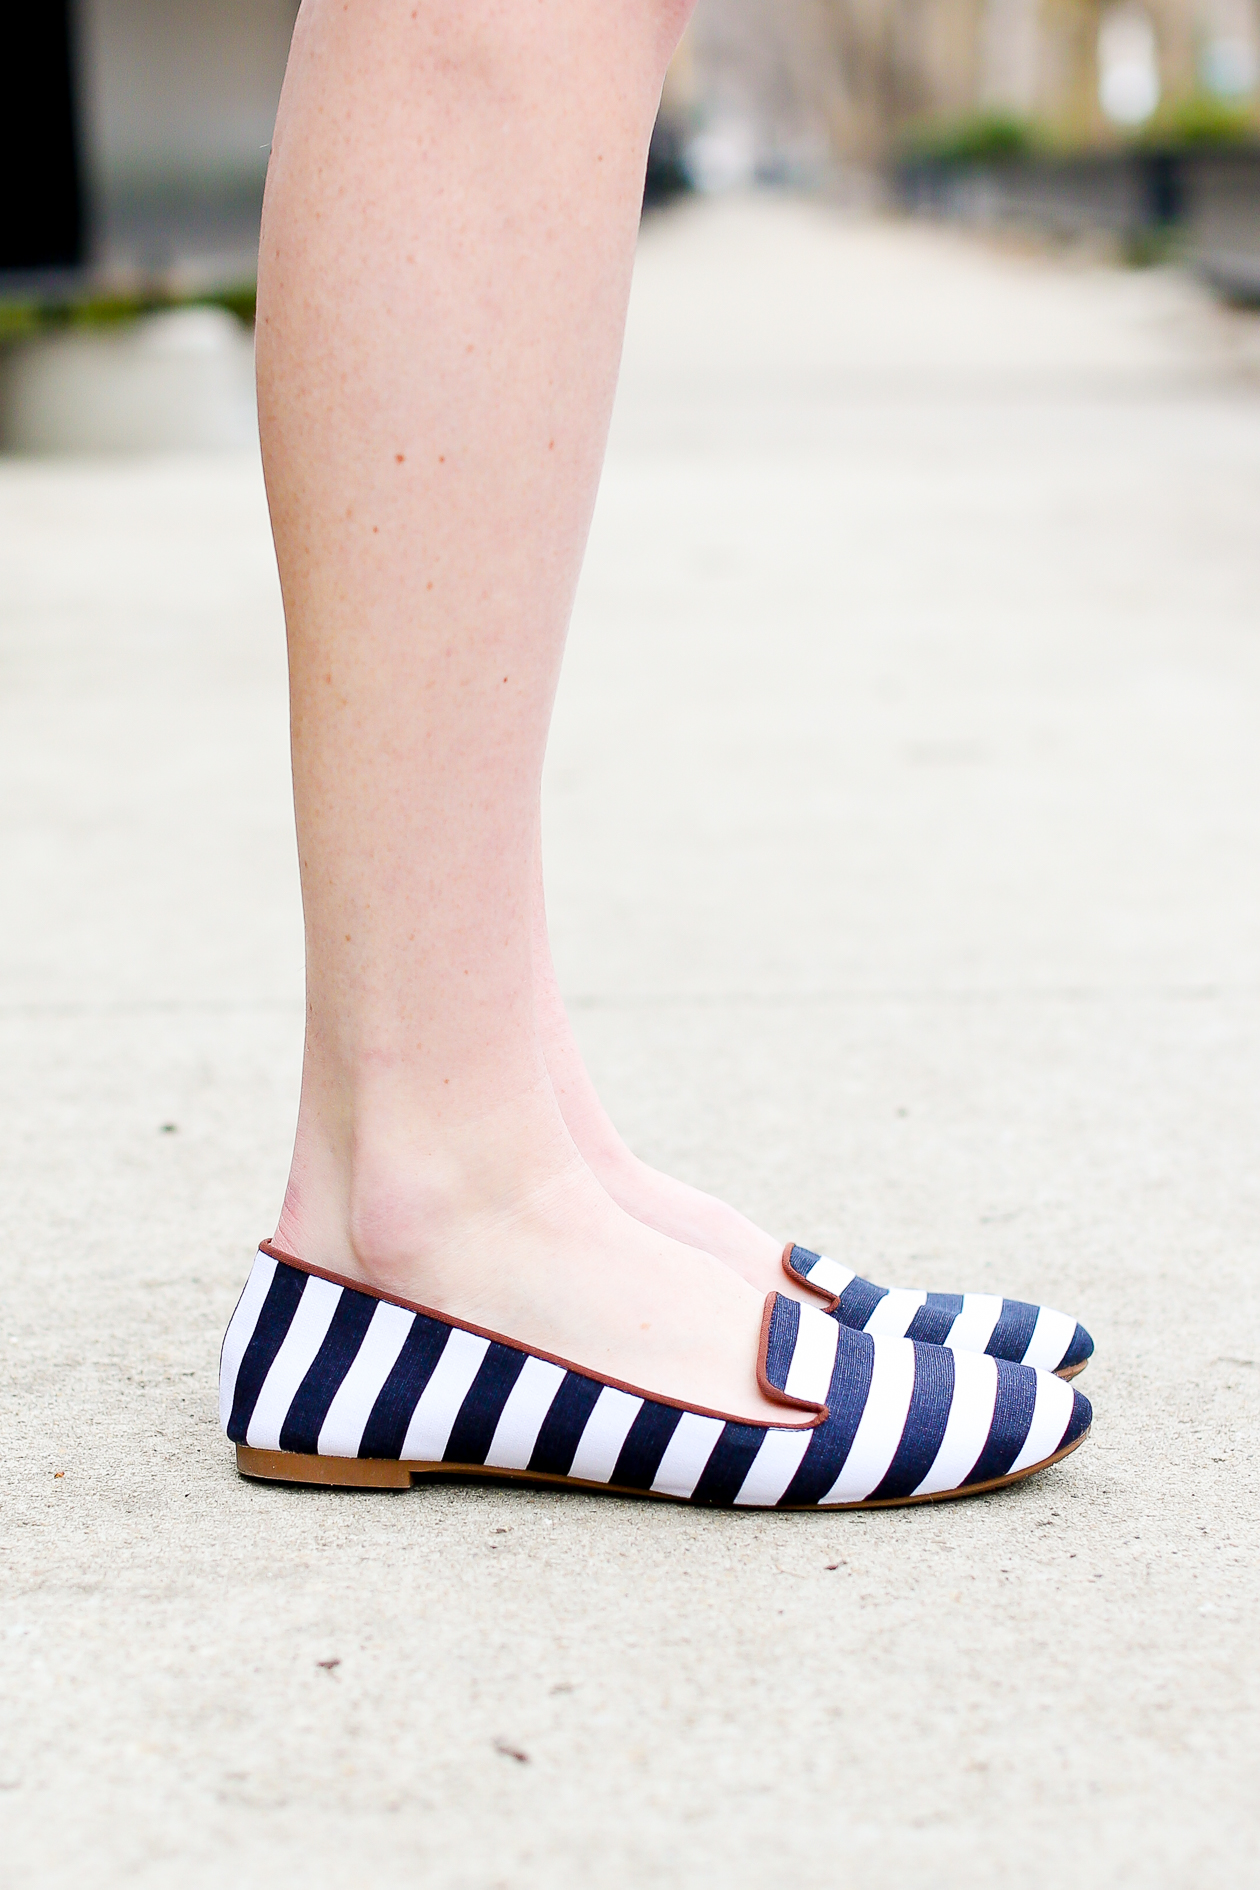 H&M Navy and White Striped Flats-33